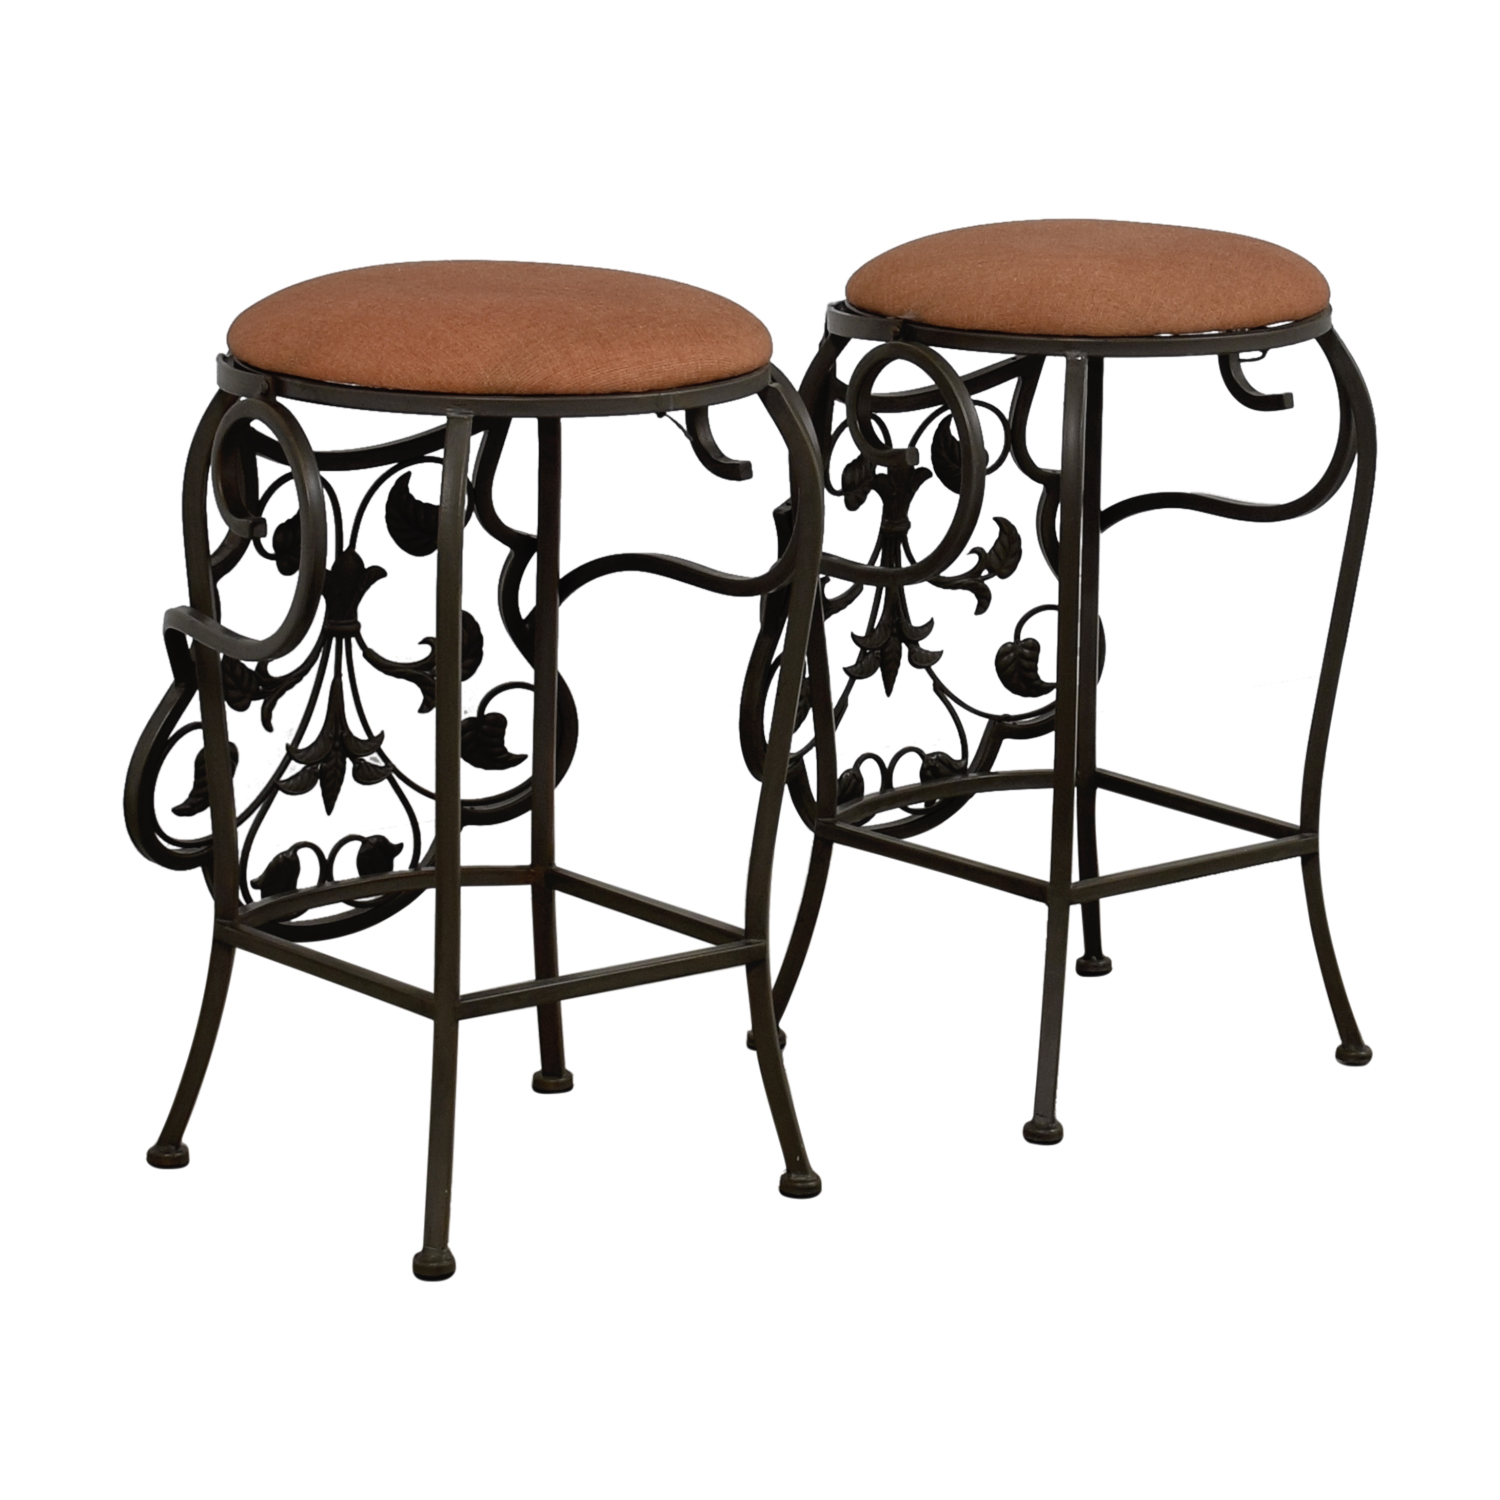 68 Off Scrolled Metal Folding Back Bar Stools Chairs